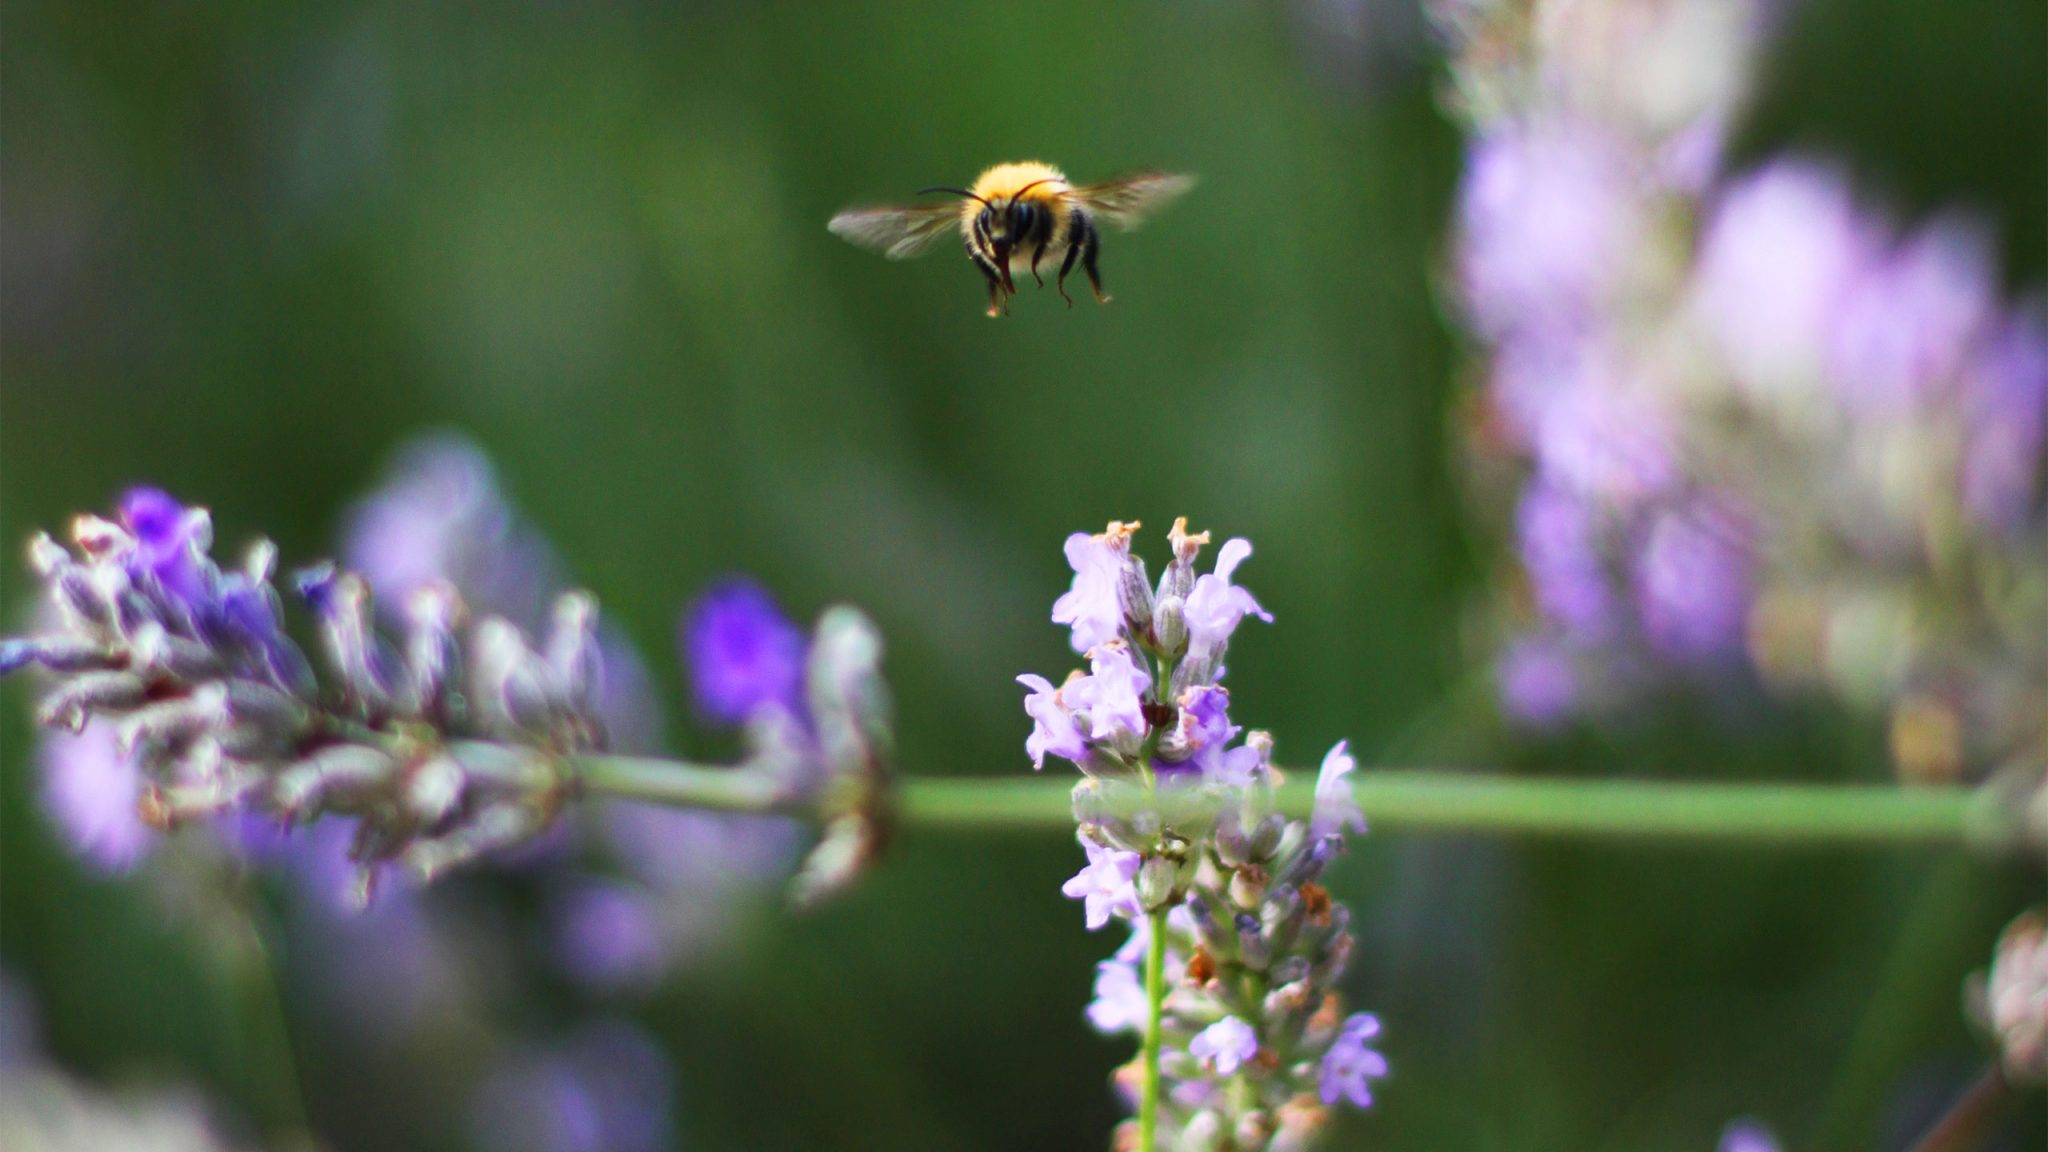 Bumble Bee hovering over Lavender